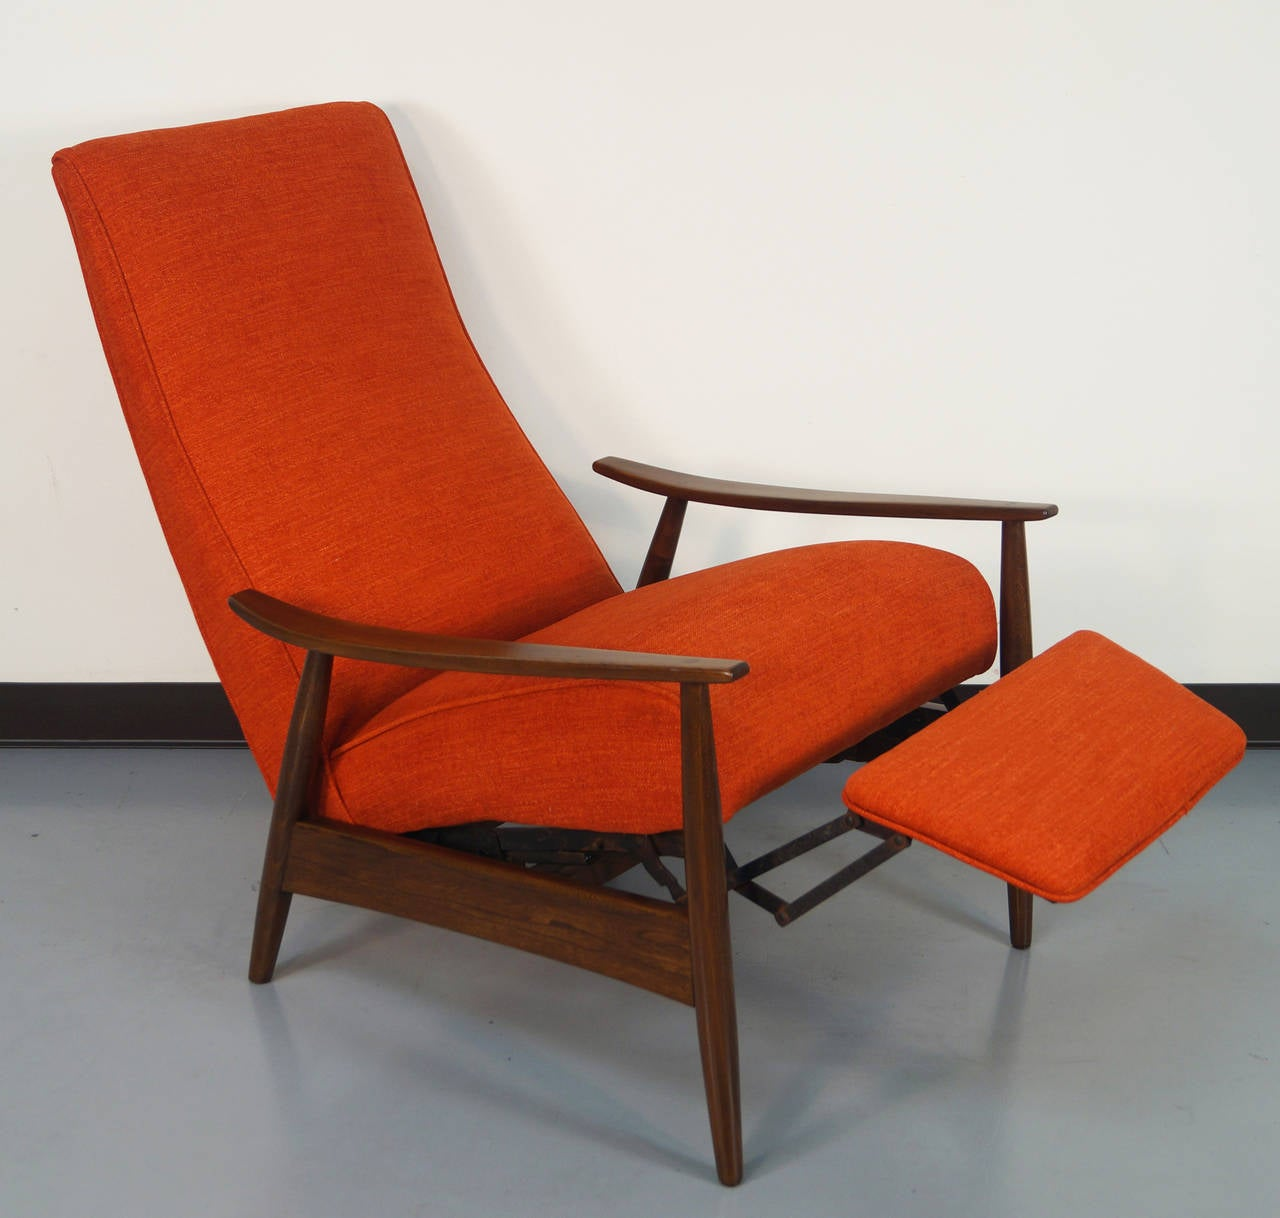 Vintage Reclining Lounge Chair by Milo Baughman 2 : reclining lounge chairs - islam-shia.org